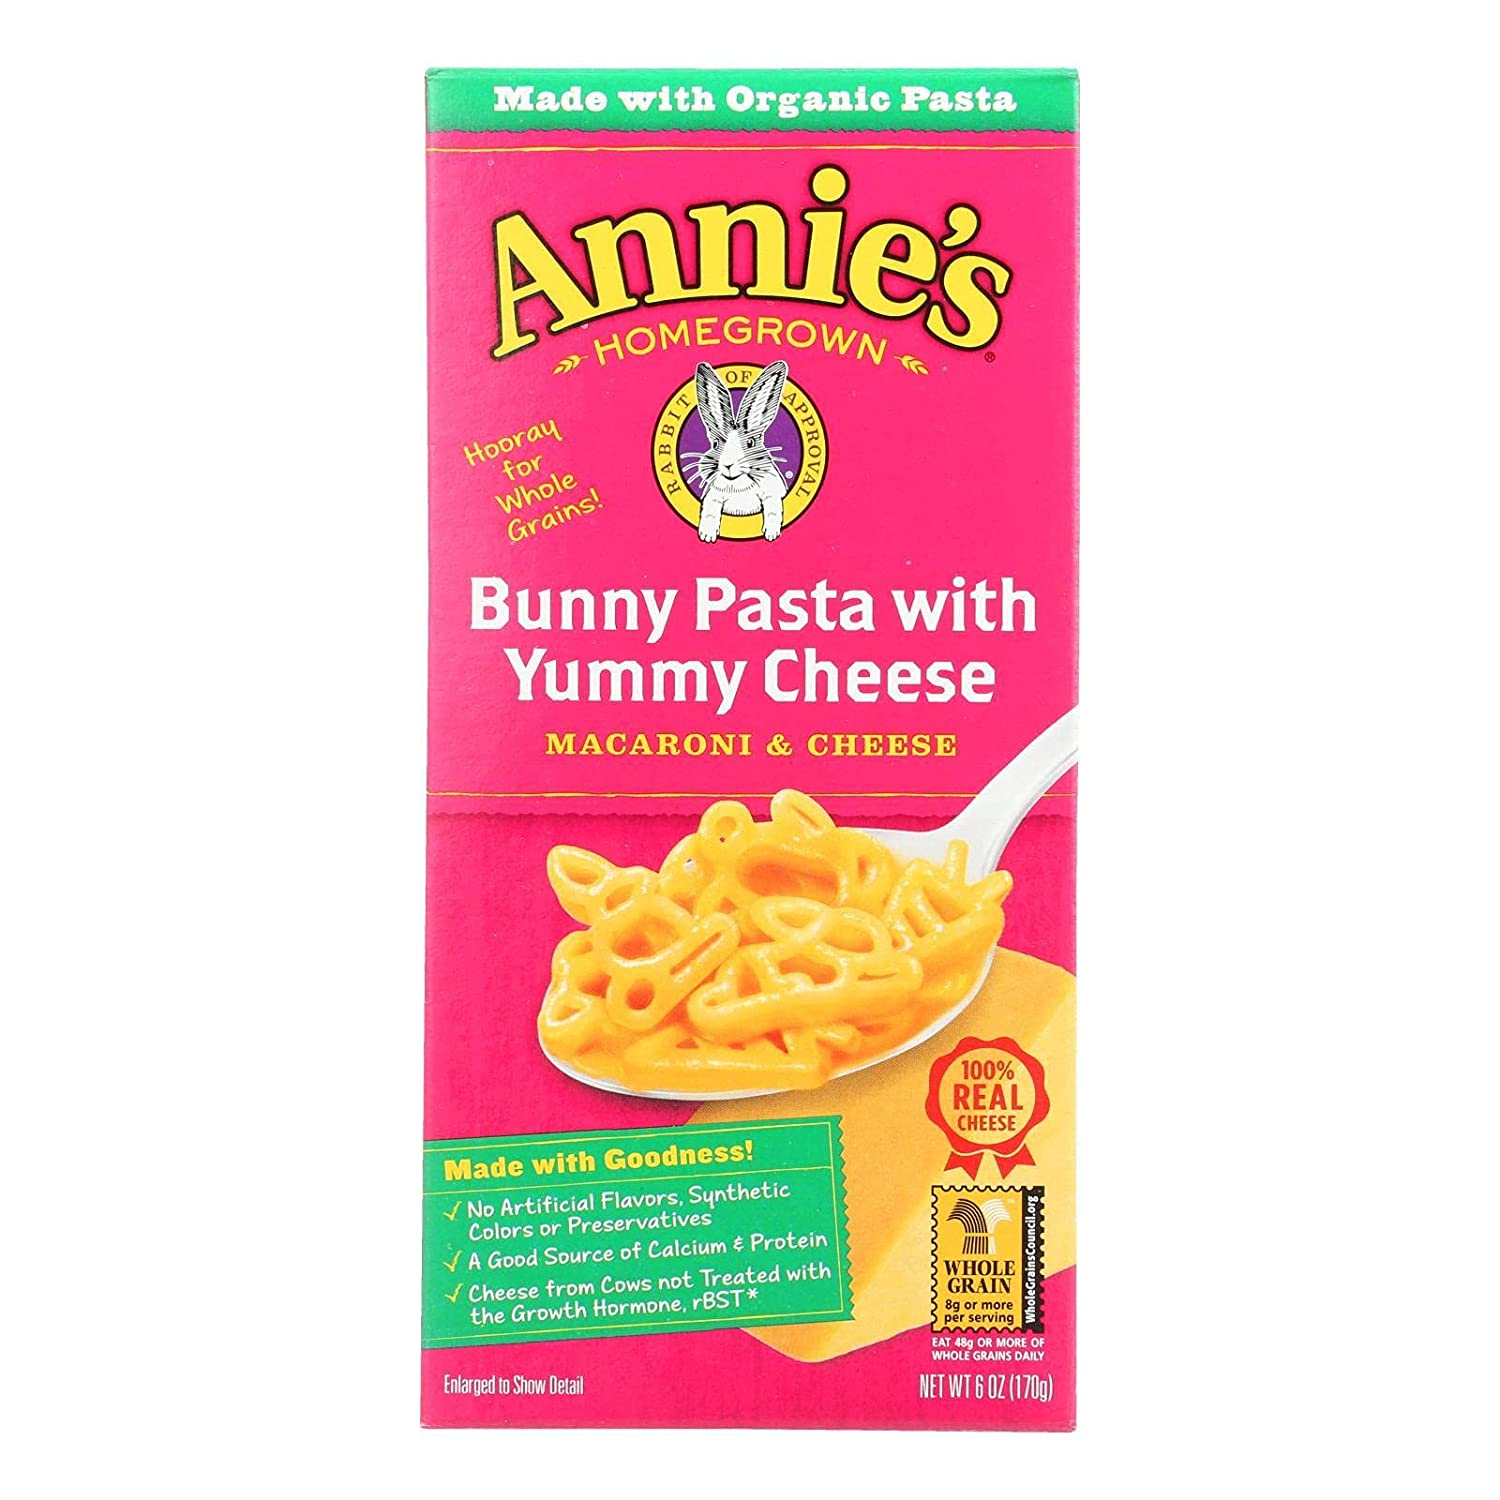 Annies Over item handling Oklahoma City Mall Homegrown Macaroni And Cheese Organic - Pasta Wit Bunny